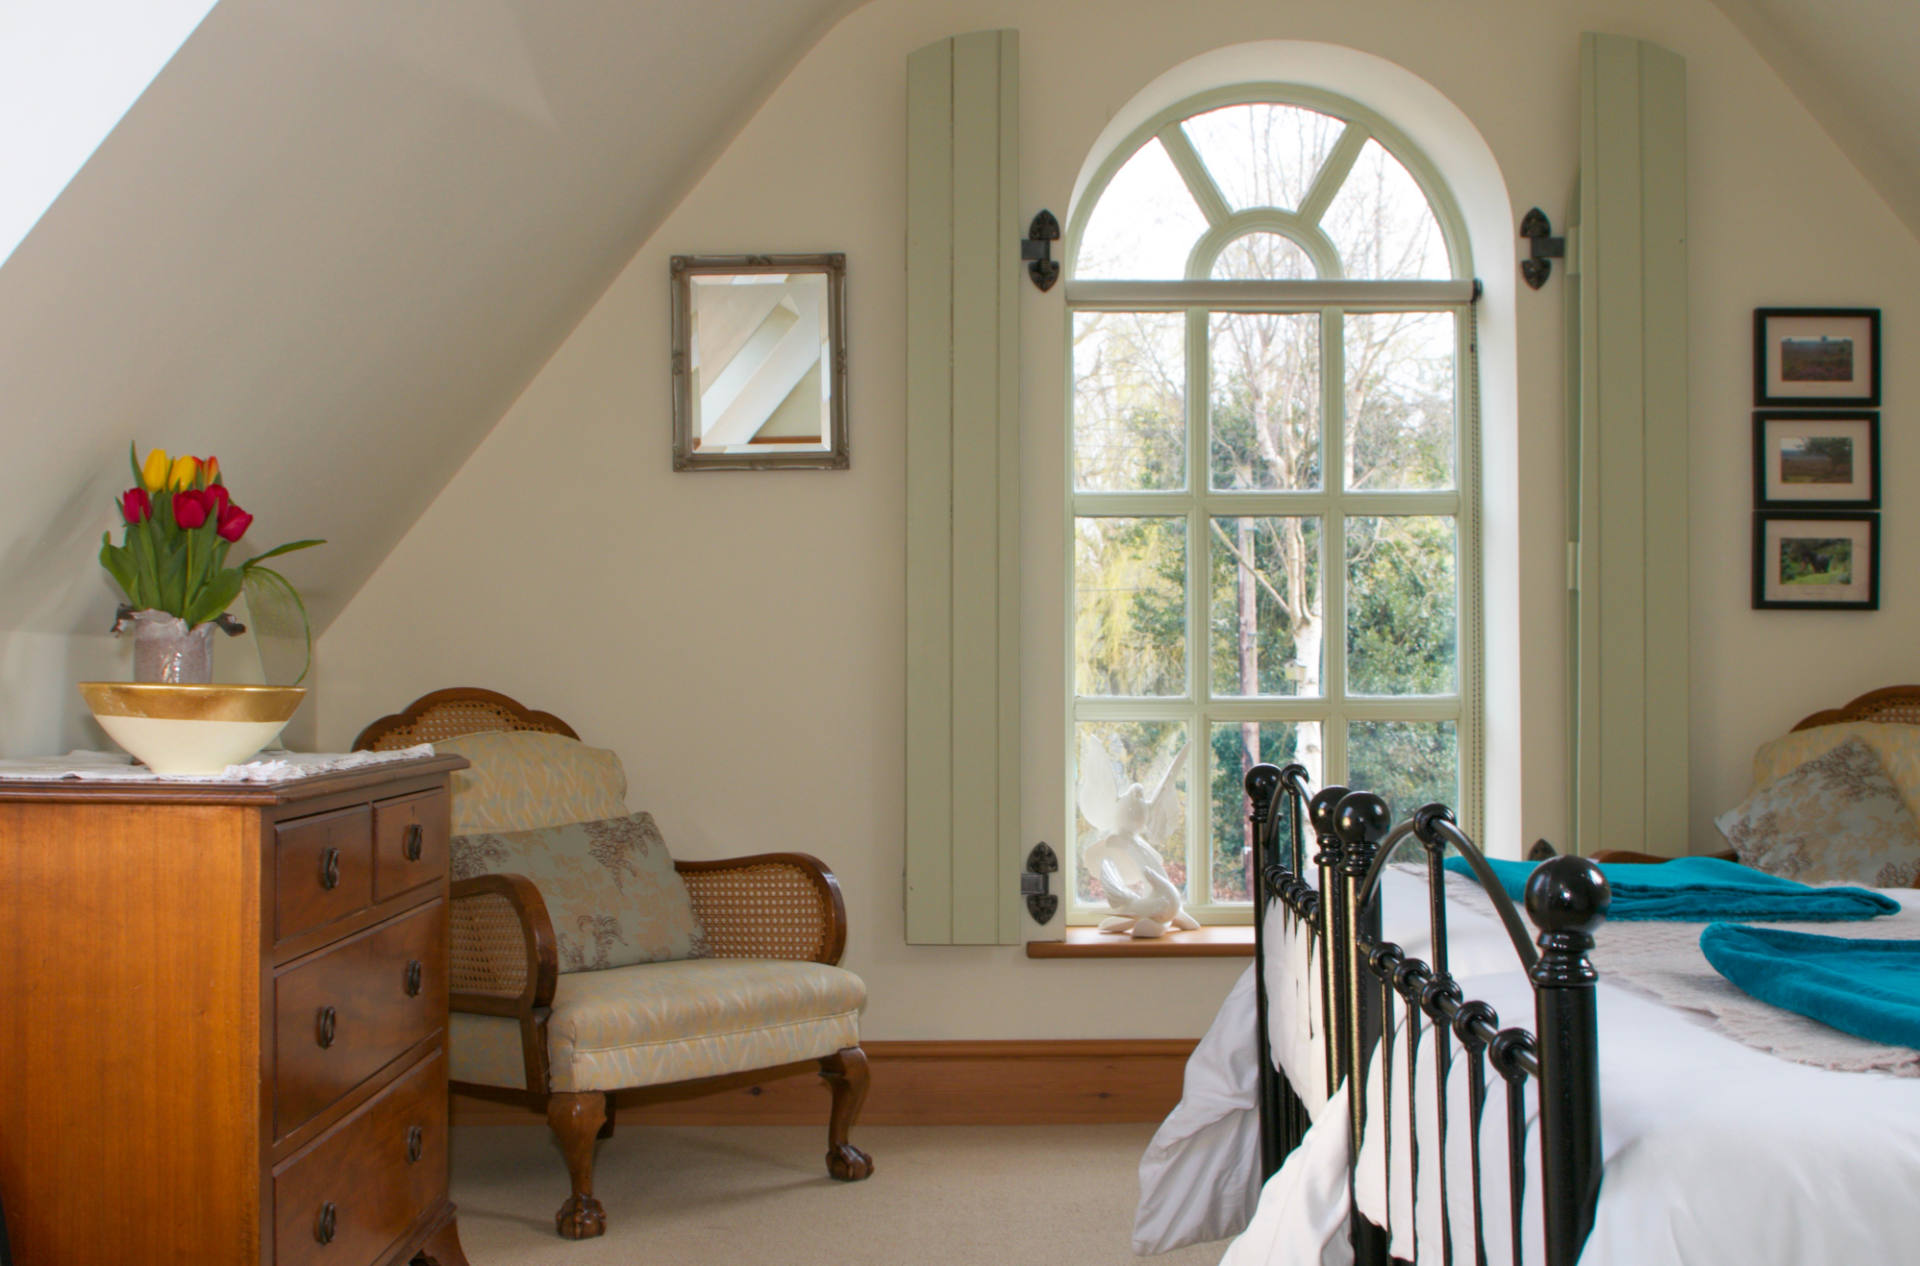 Molly's Den bedroom with large window.